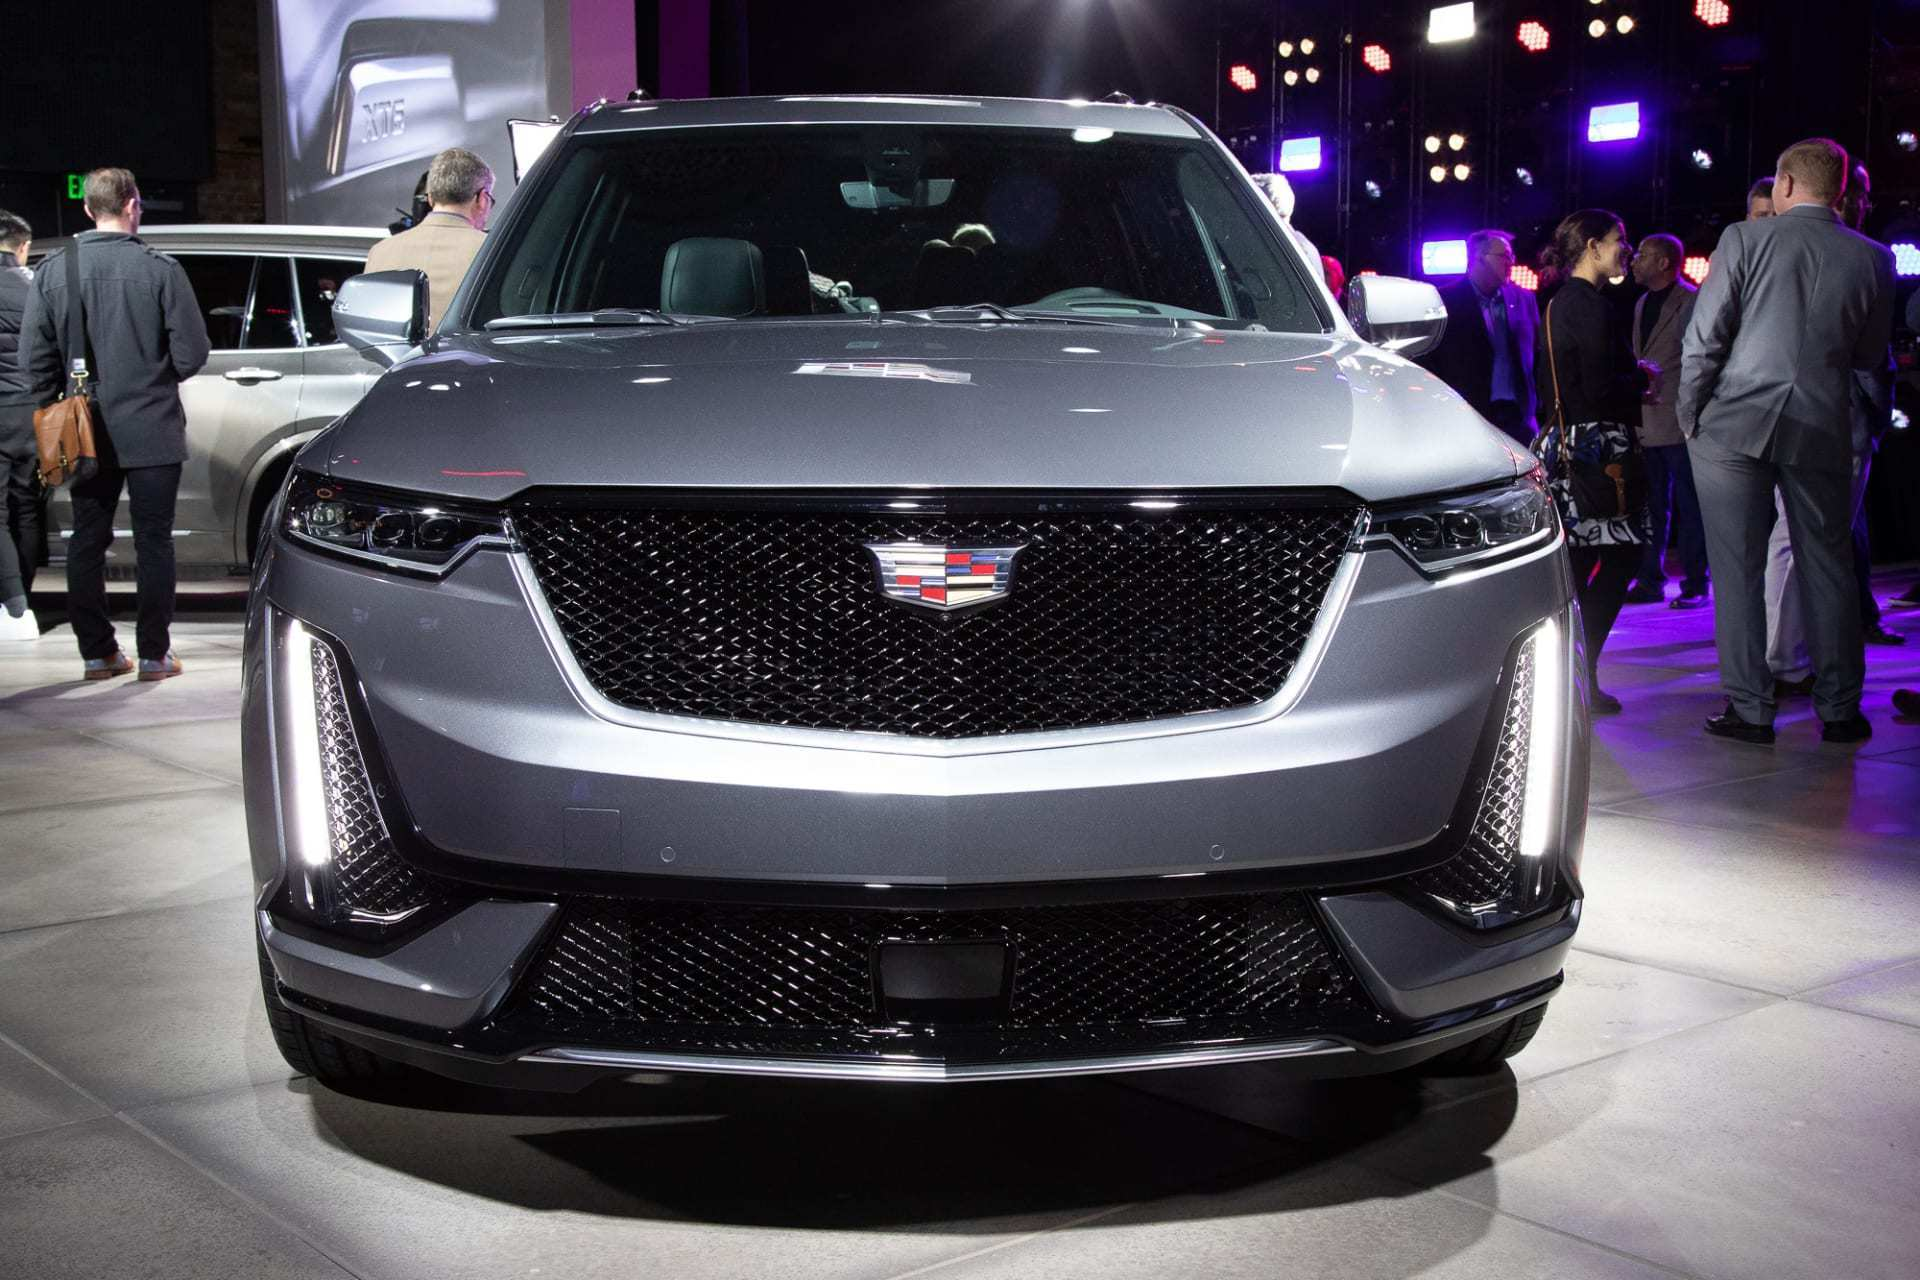 29 New 2020 Cadillac Cars Redesign And Concept